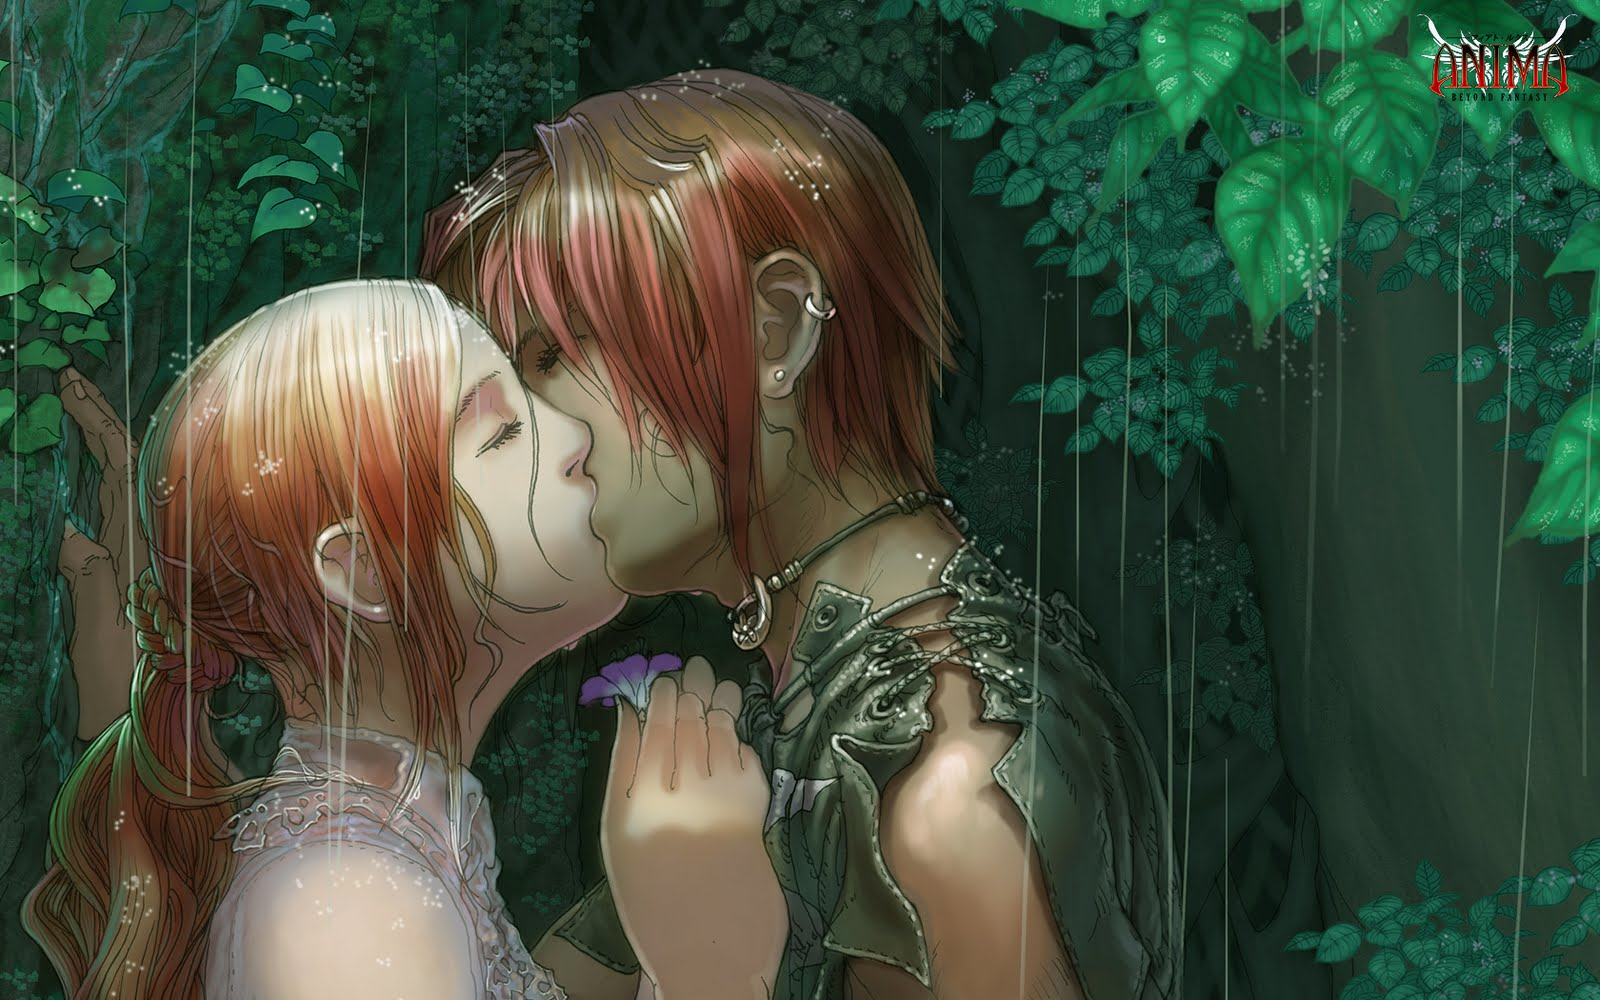 http://1.bp.blogspot.com/_Po_rLeVma8U/TR1P3KkZY8I/AAAAAAAAACU/7PyGrit3j3c/s1600/kissing-in-the-rain-wallpaper.jpg